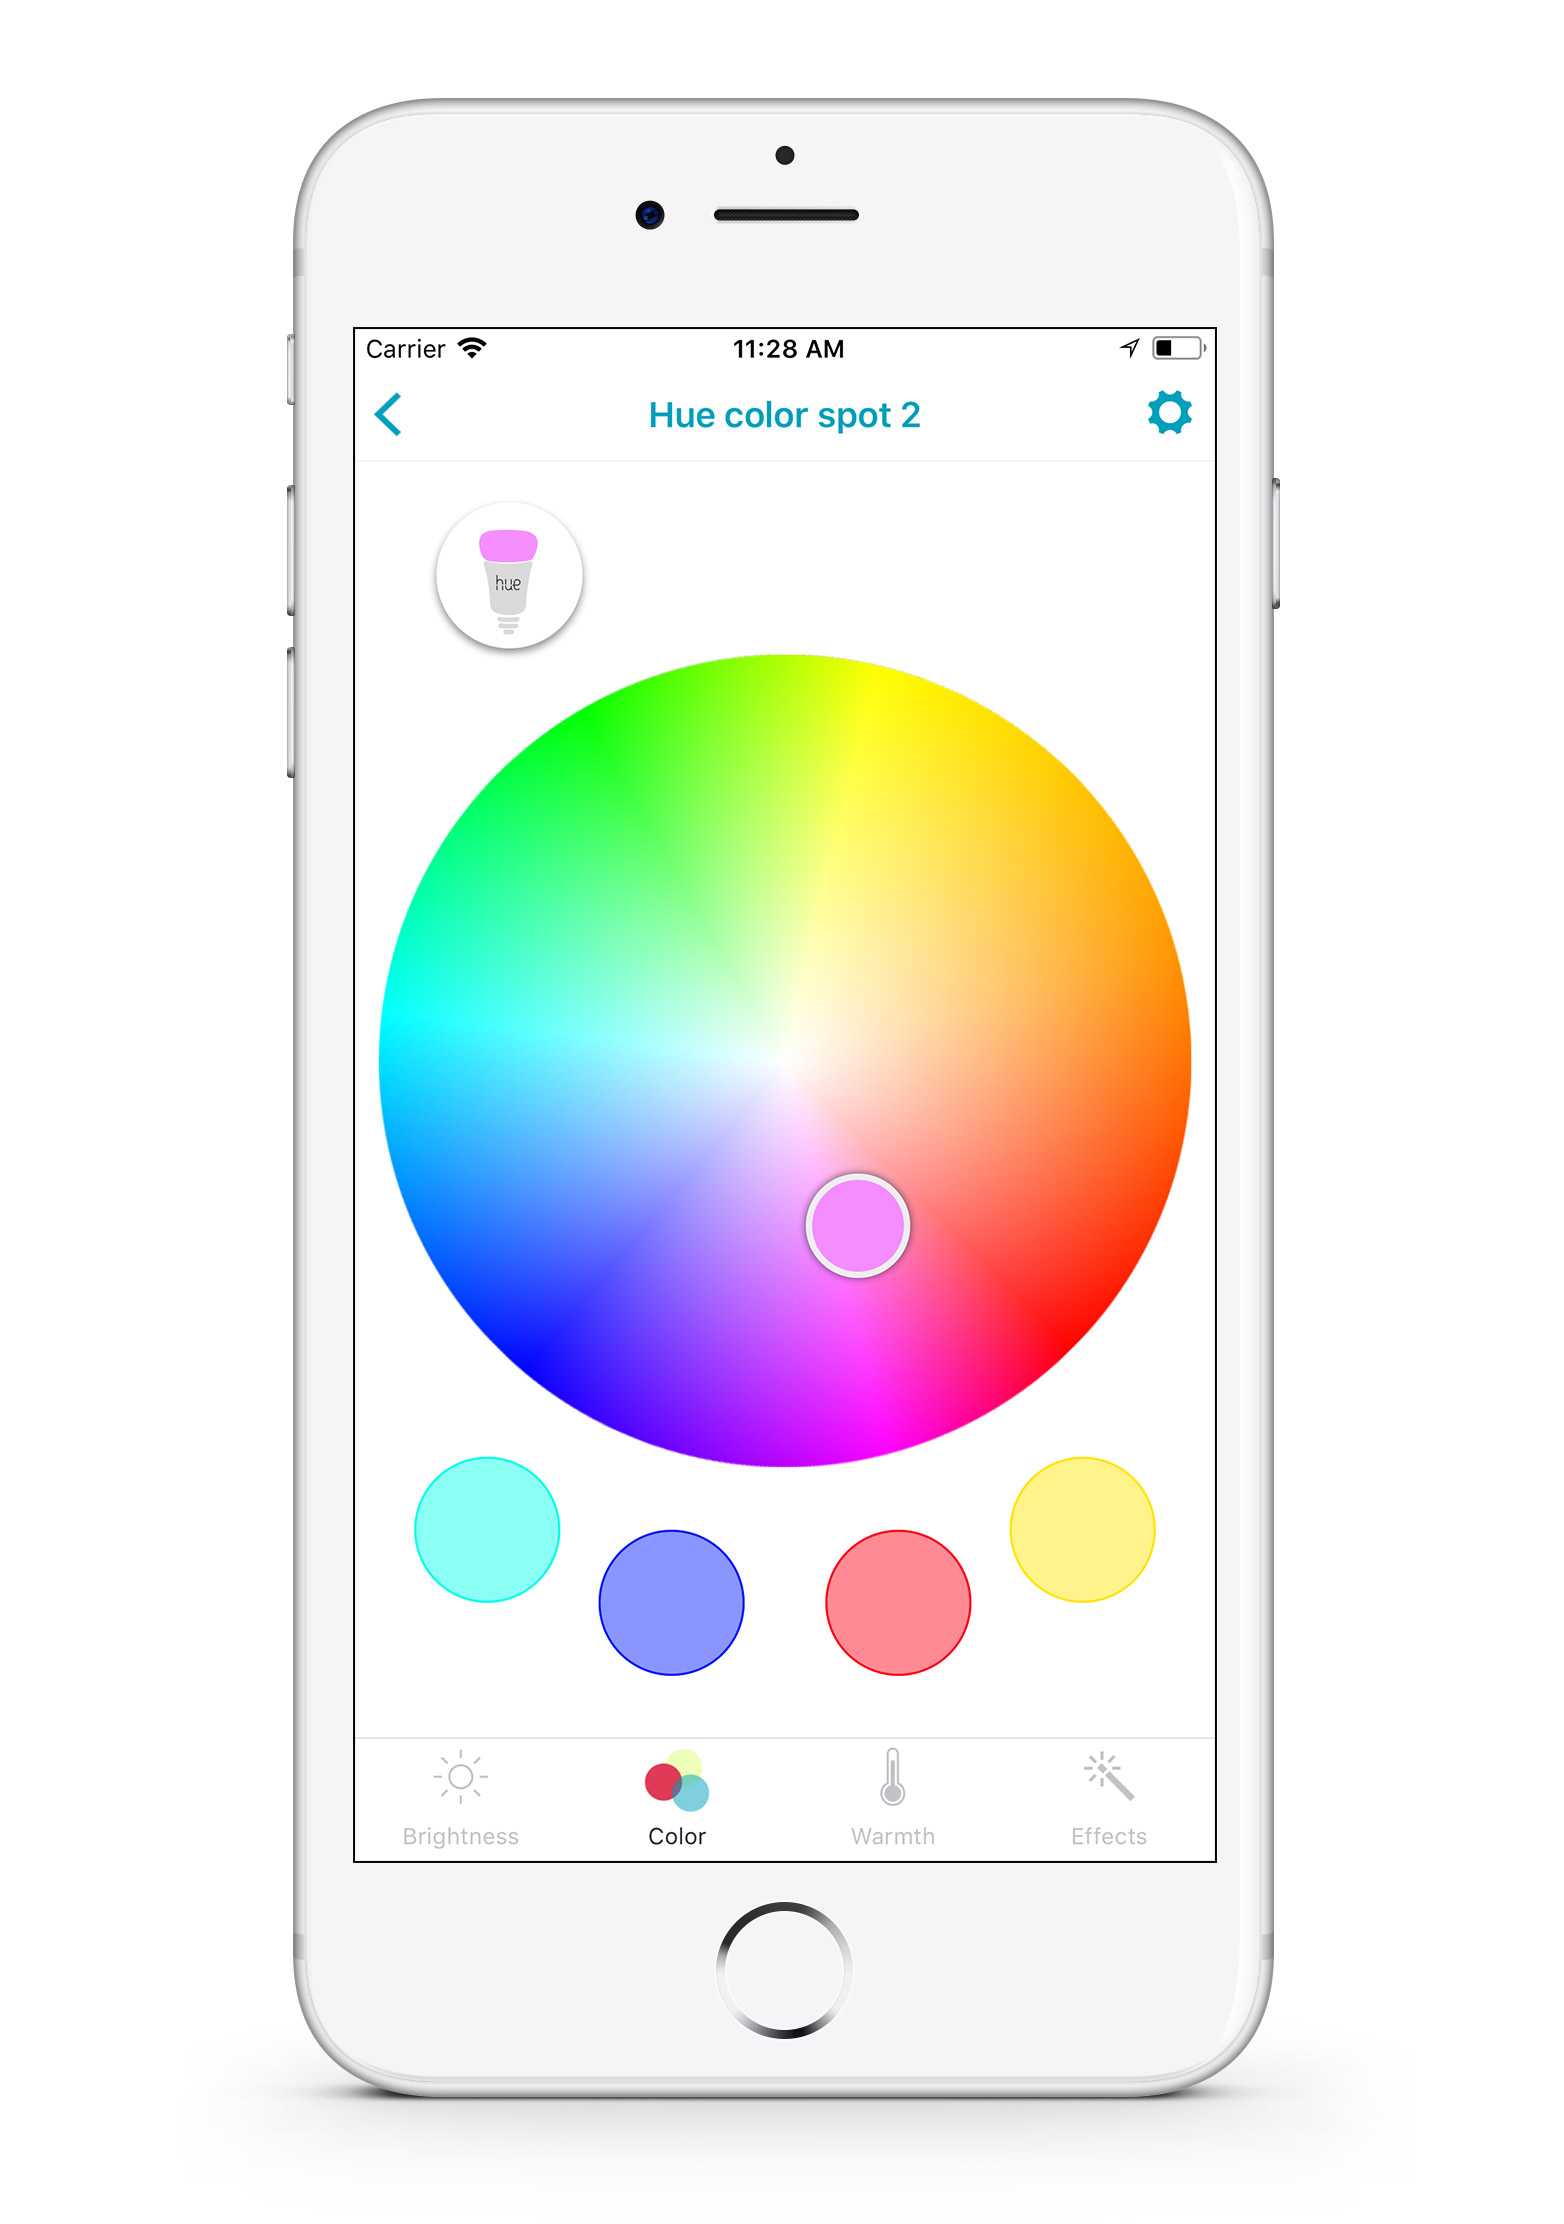 💡 The most common problems and issues with your Philips Hue